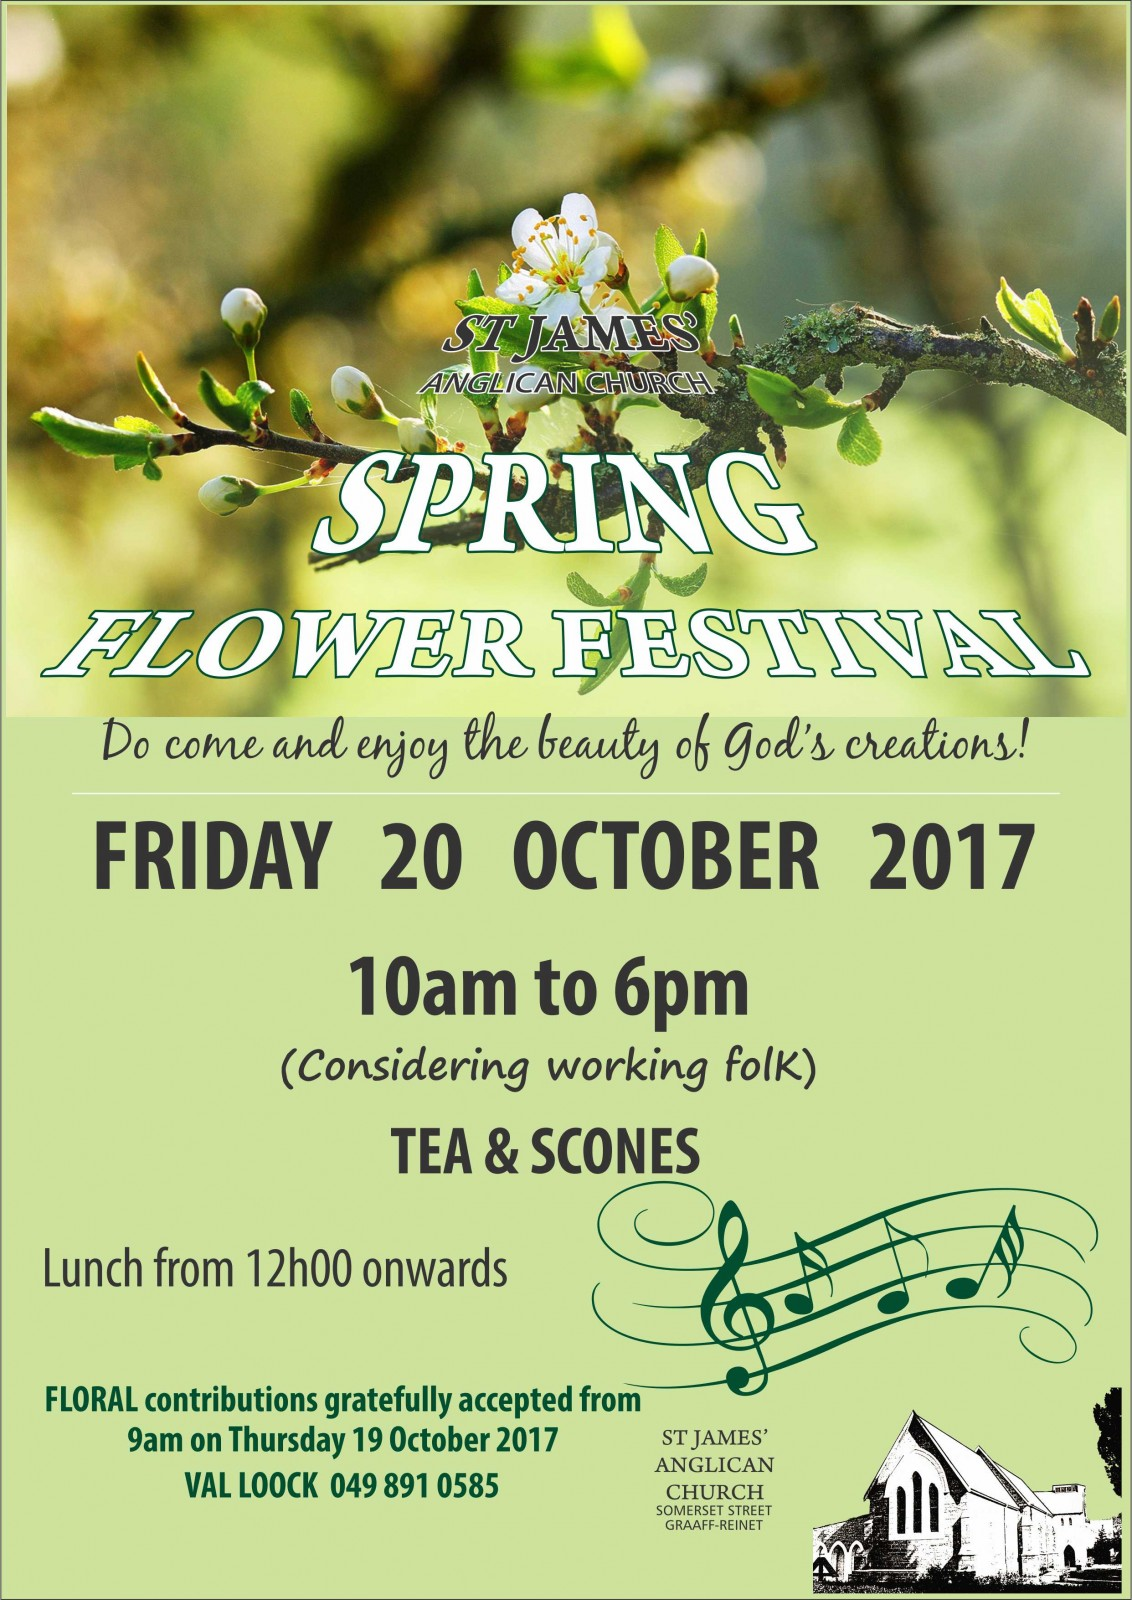 st_james_anglican_church_spring_flower_show_poster_2017.jpg